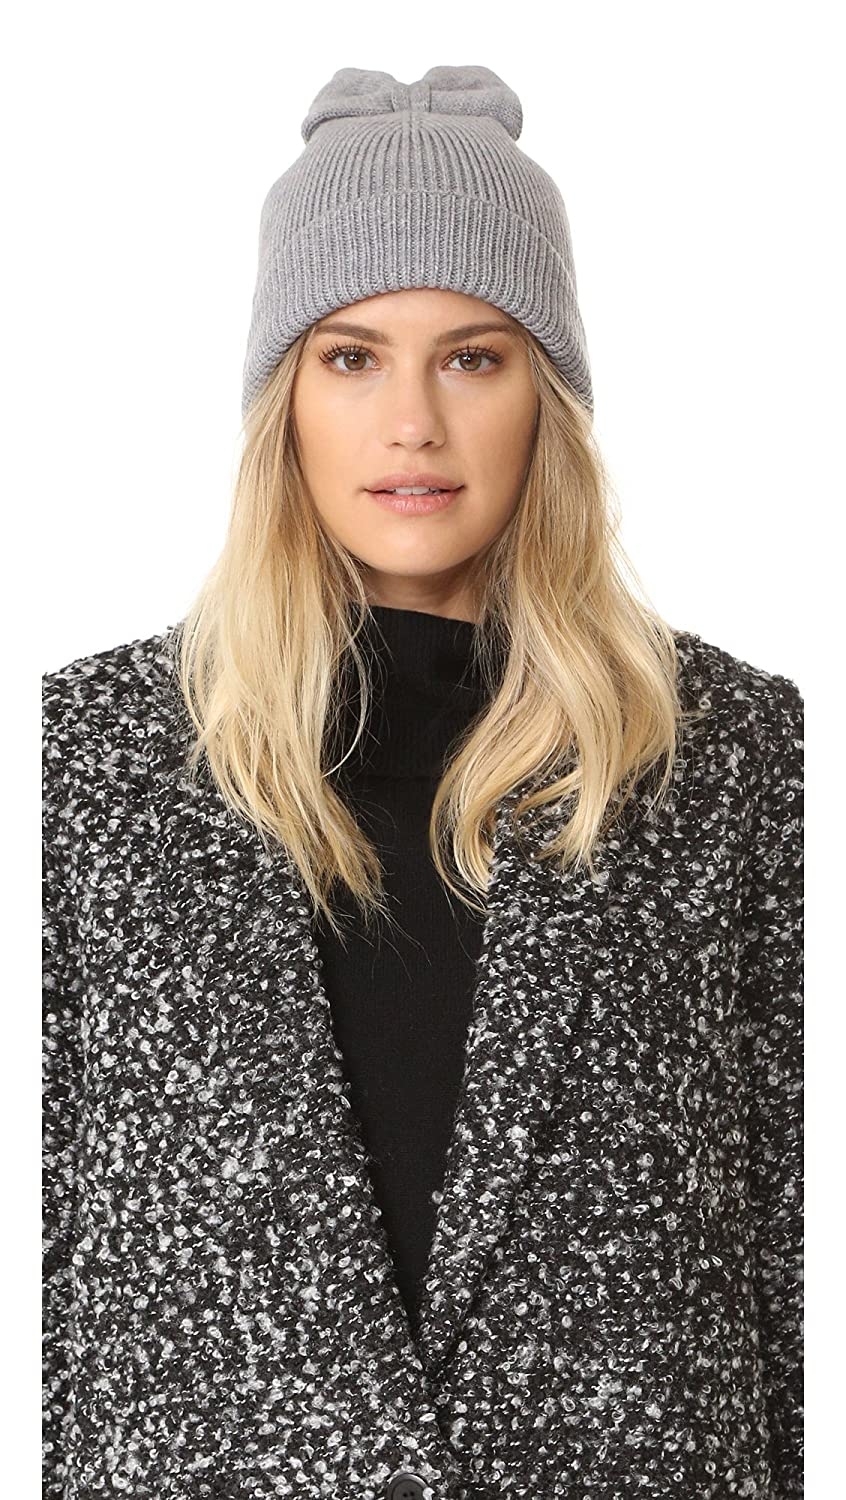 5bcc710358d Amazon.com  Kate Spade New York Women s Solid Bow Beanie Heather Gray   Clothing